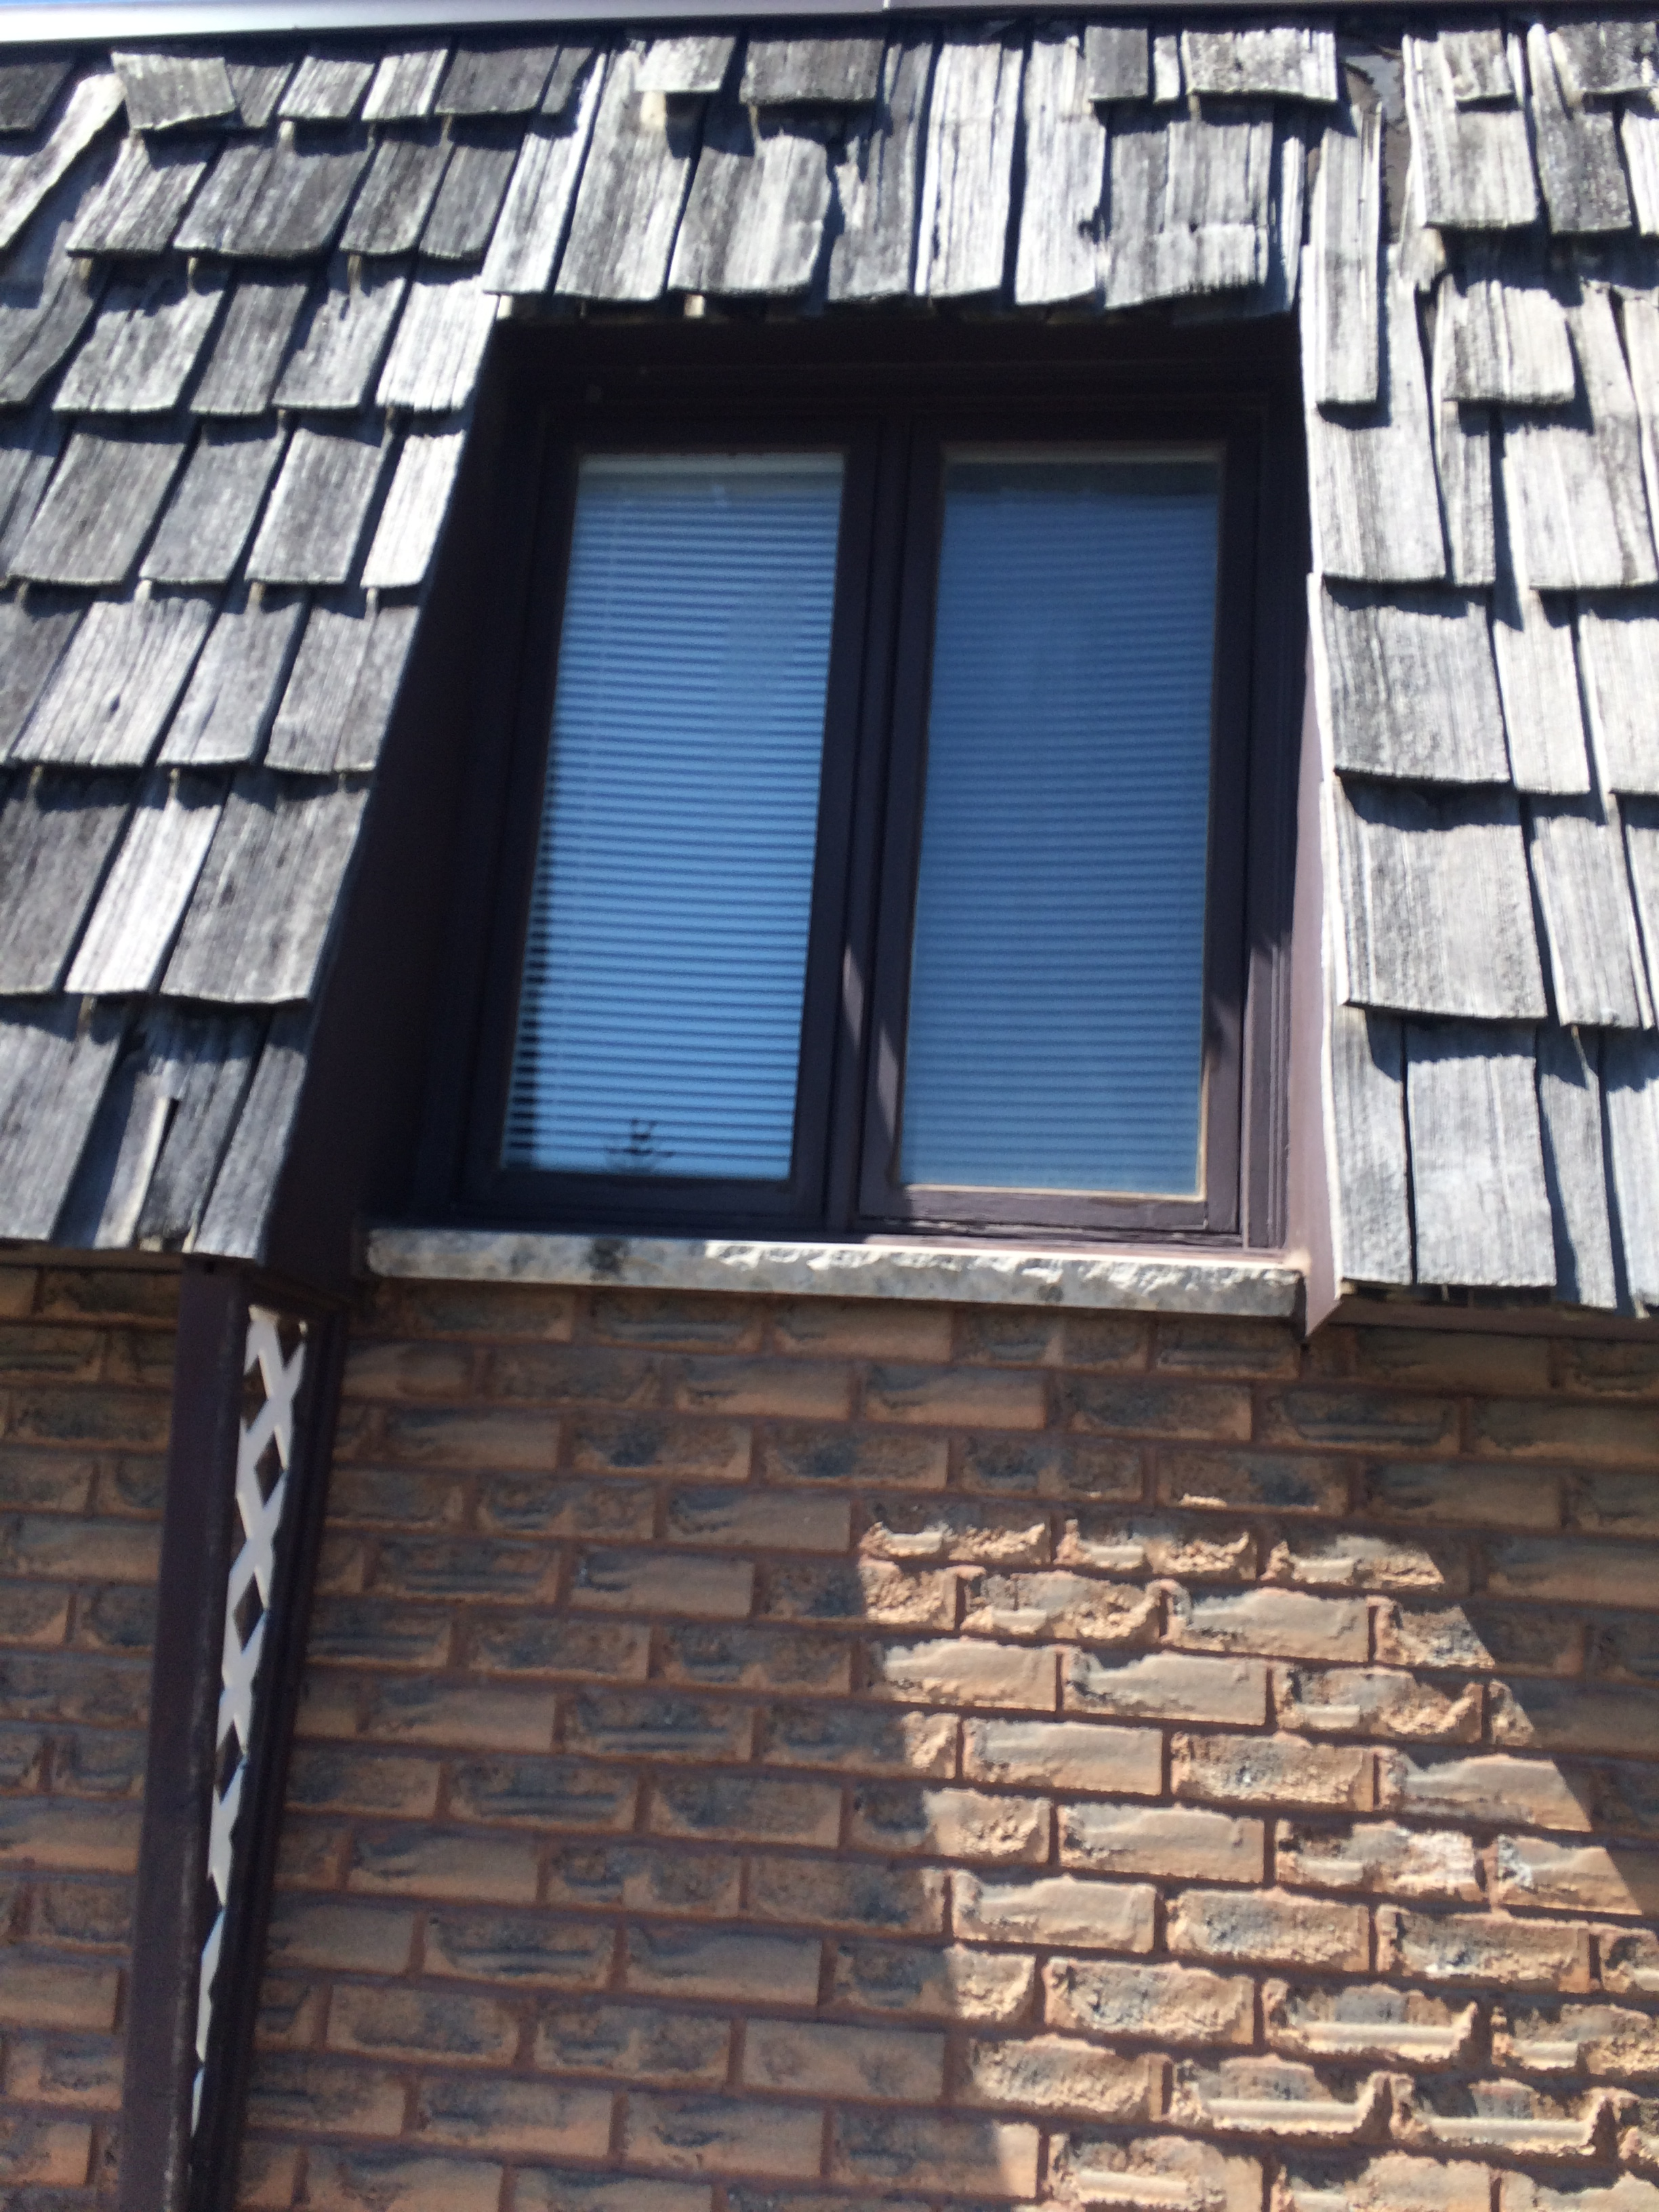 Deteriorated cedar shingles on commercial building in Pickering